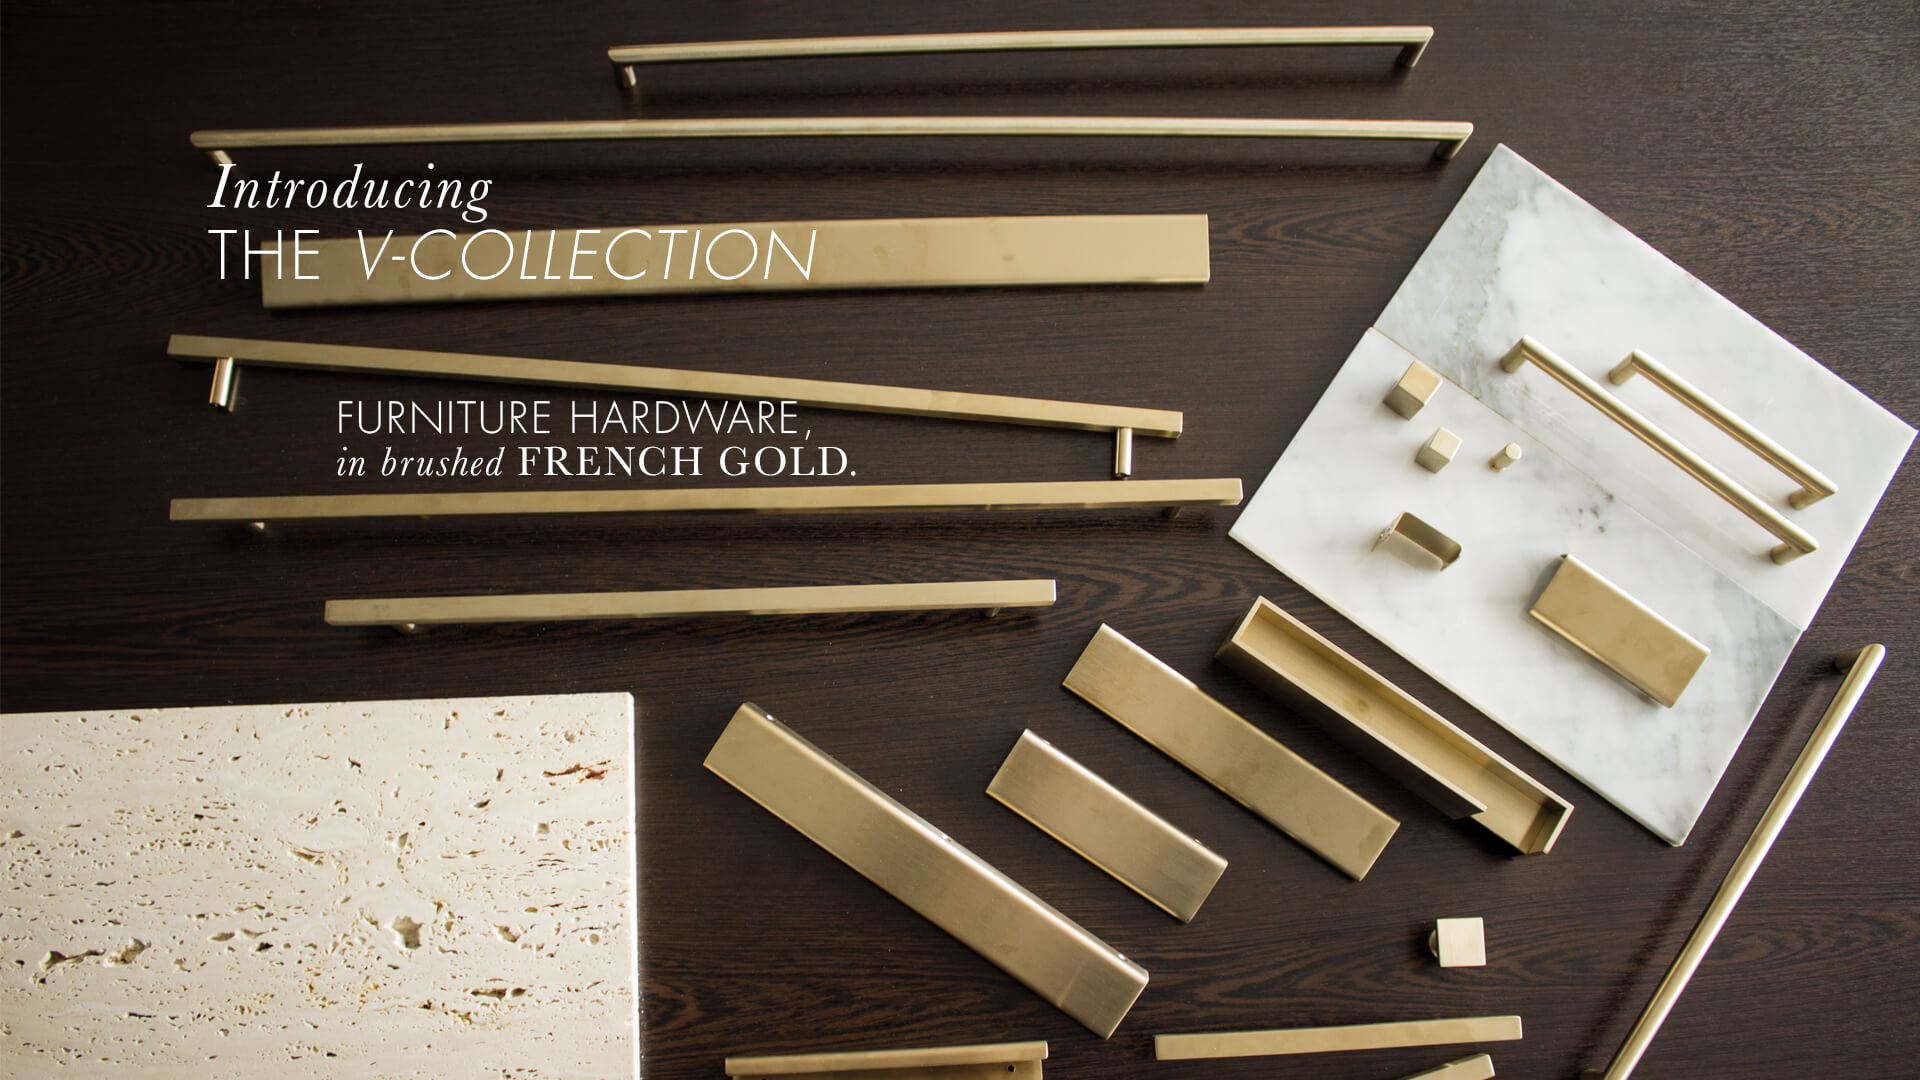 Lerou V-Collection: Furniture Hardware in Brushed French Gold. Lerou V-Collection: Meubelbeslag in geborsteld French Gold.